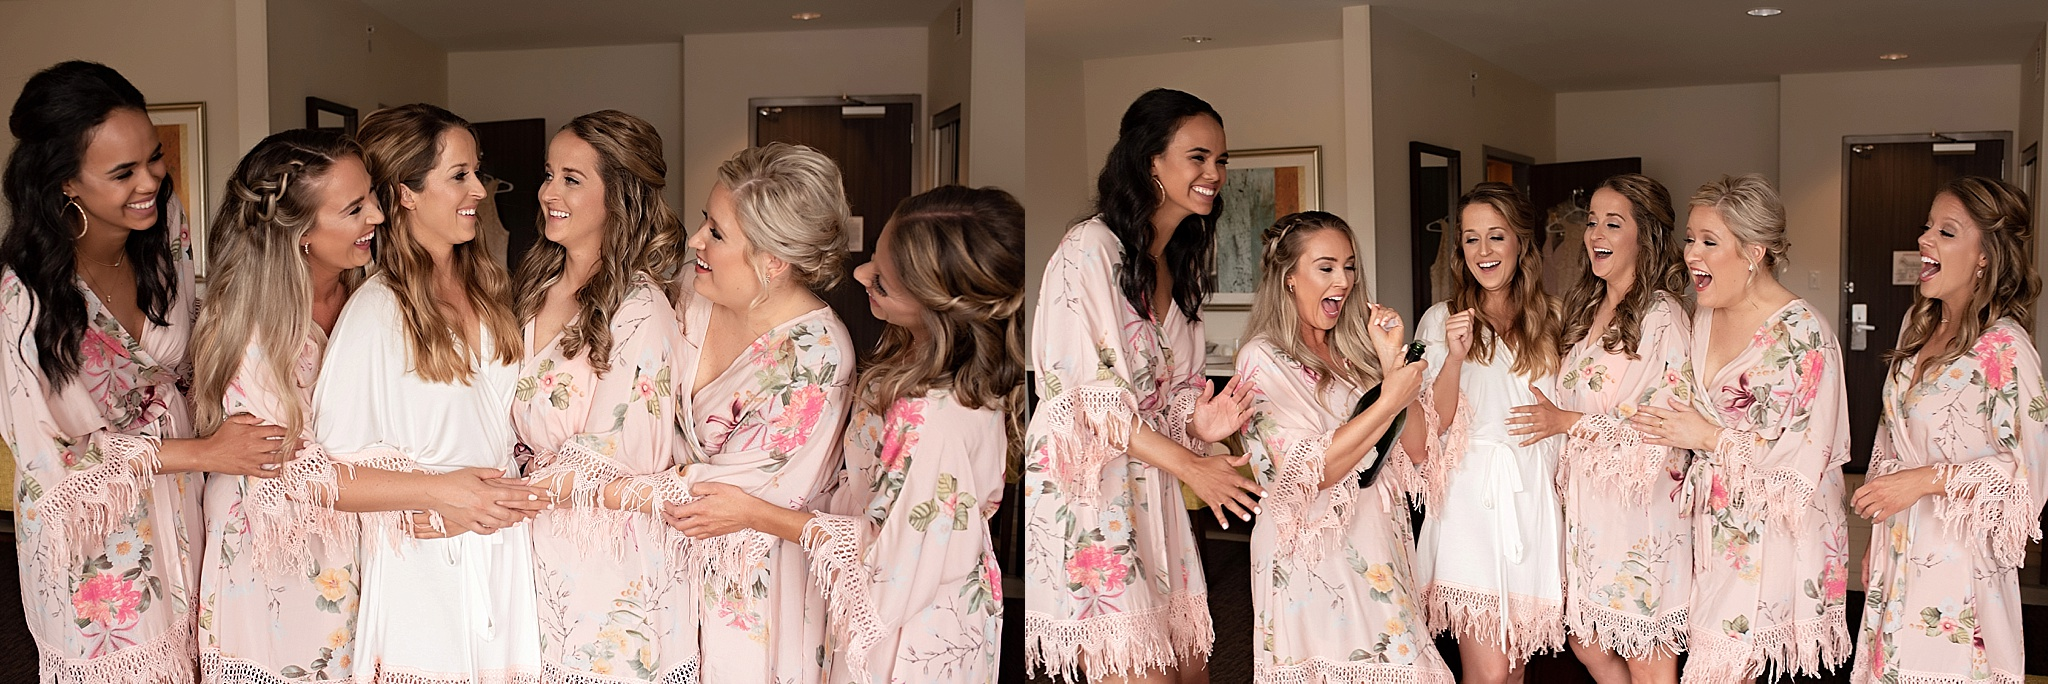 bridesmaids in pink robes with bride popping champagne